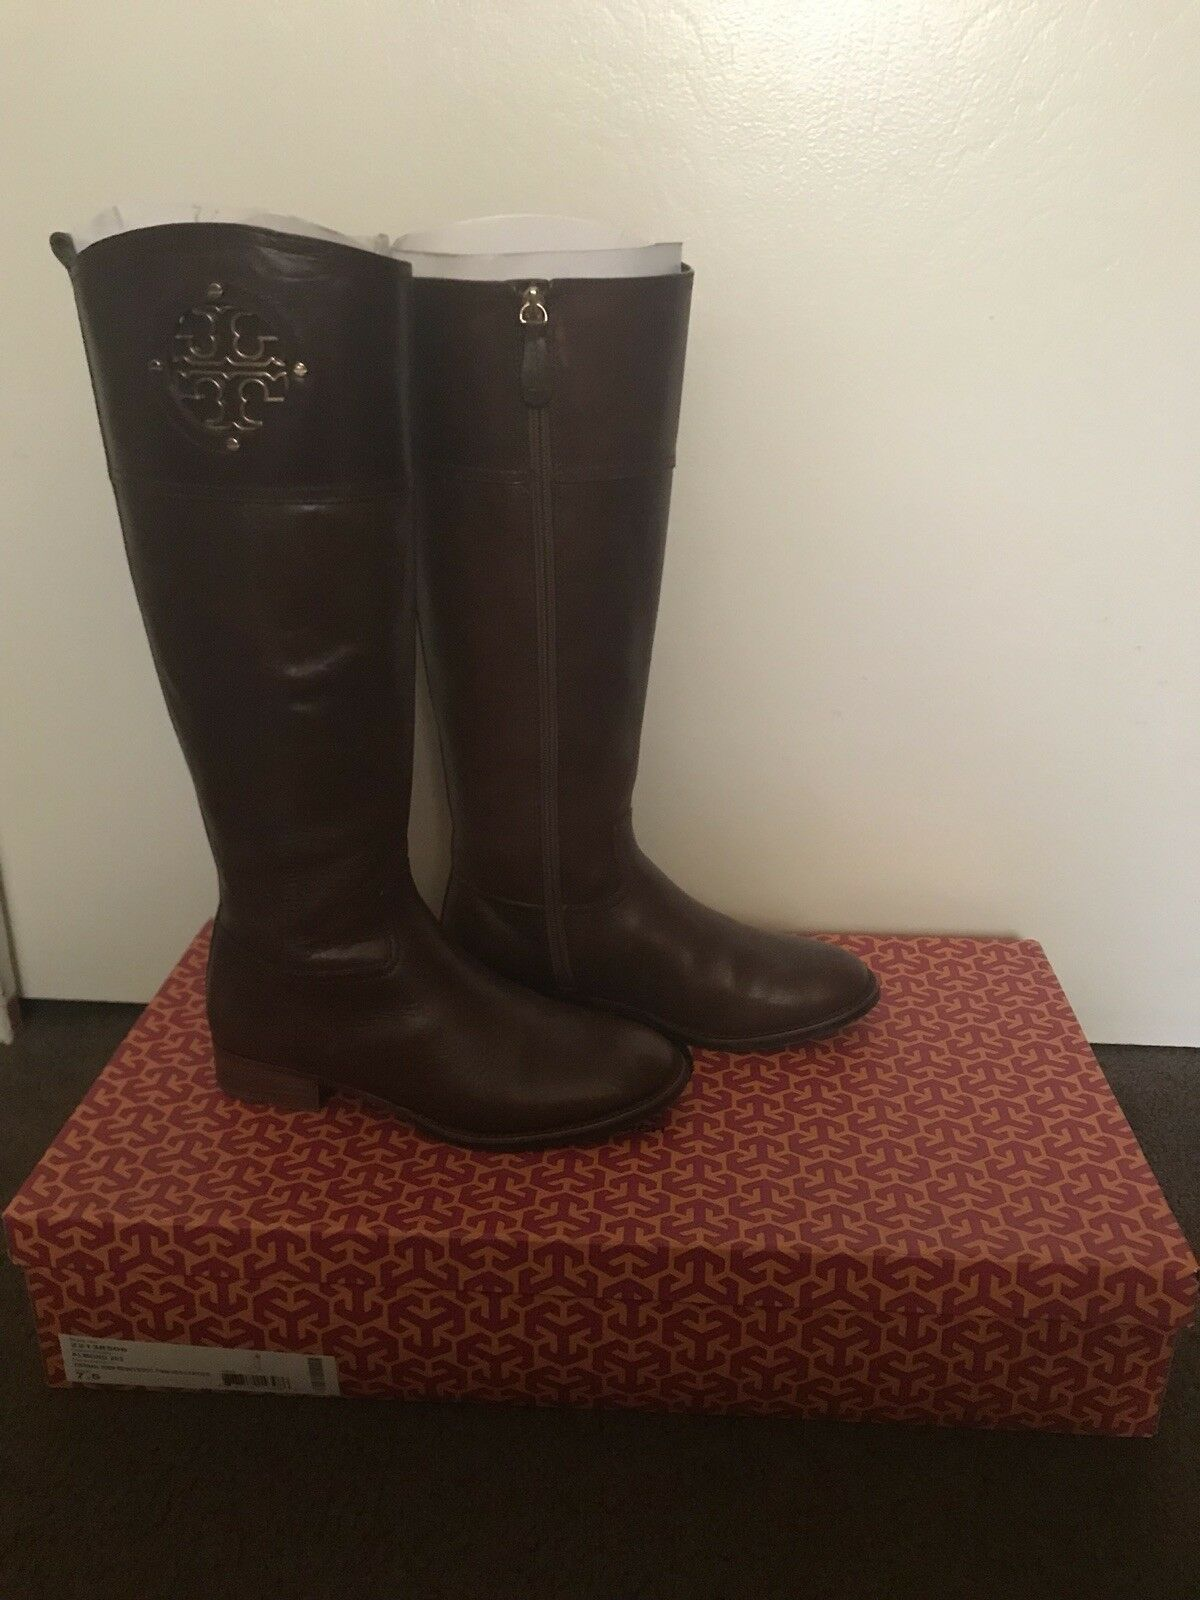 Tory Burch Kiernan 35MM Leather Riding Boot Finni Veg Leather 35MM size 7.5 987a14